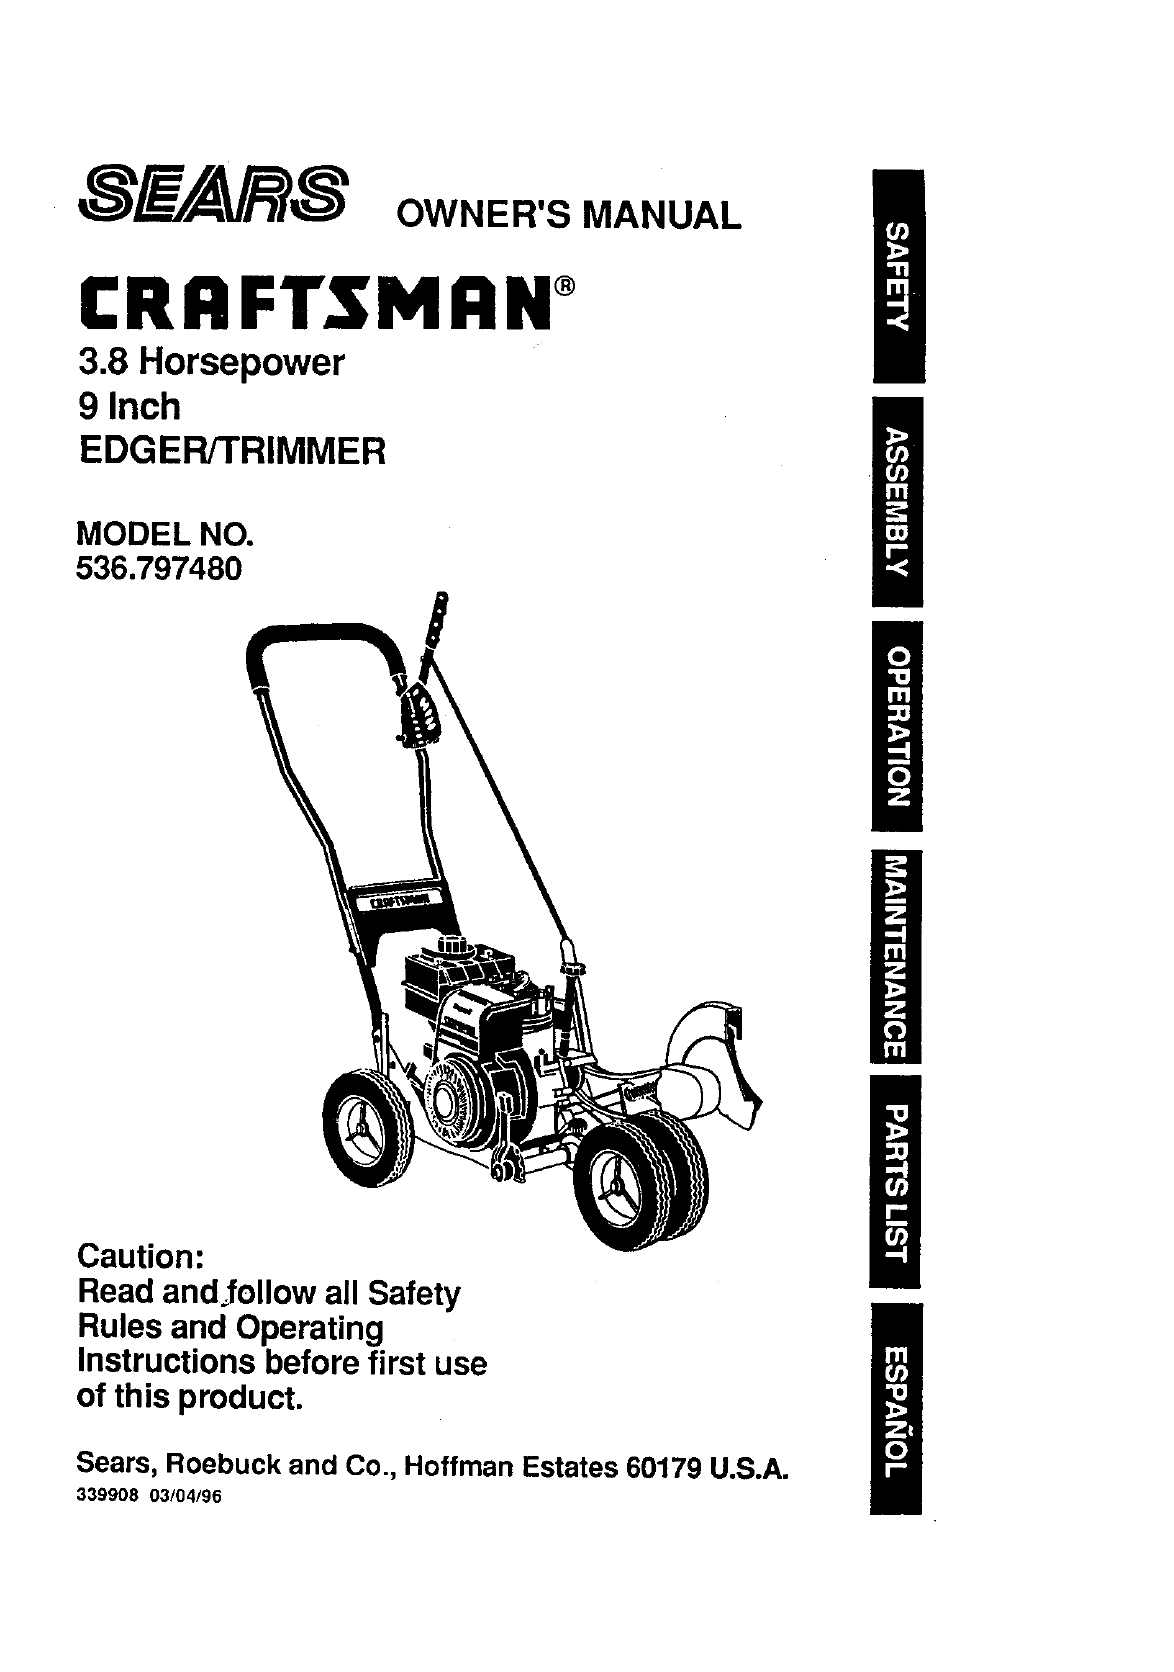 Craftsman 536797480 User Manual 3 8 Hp 9 Edger  Trimmer